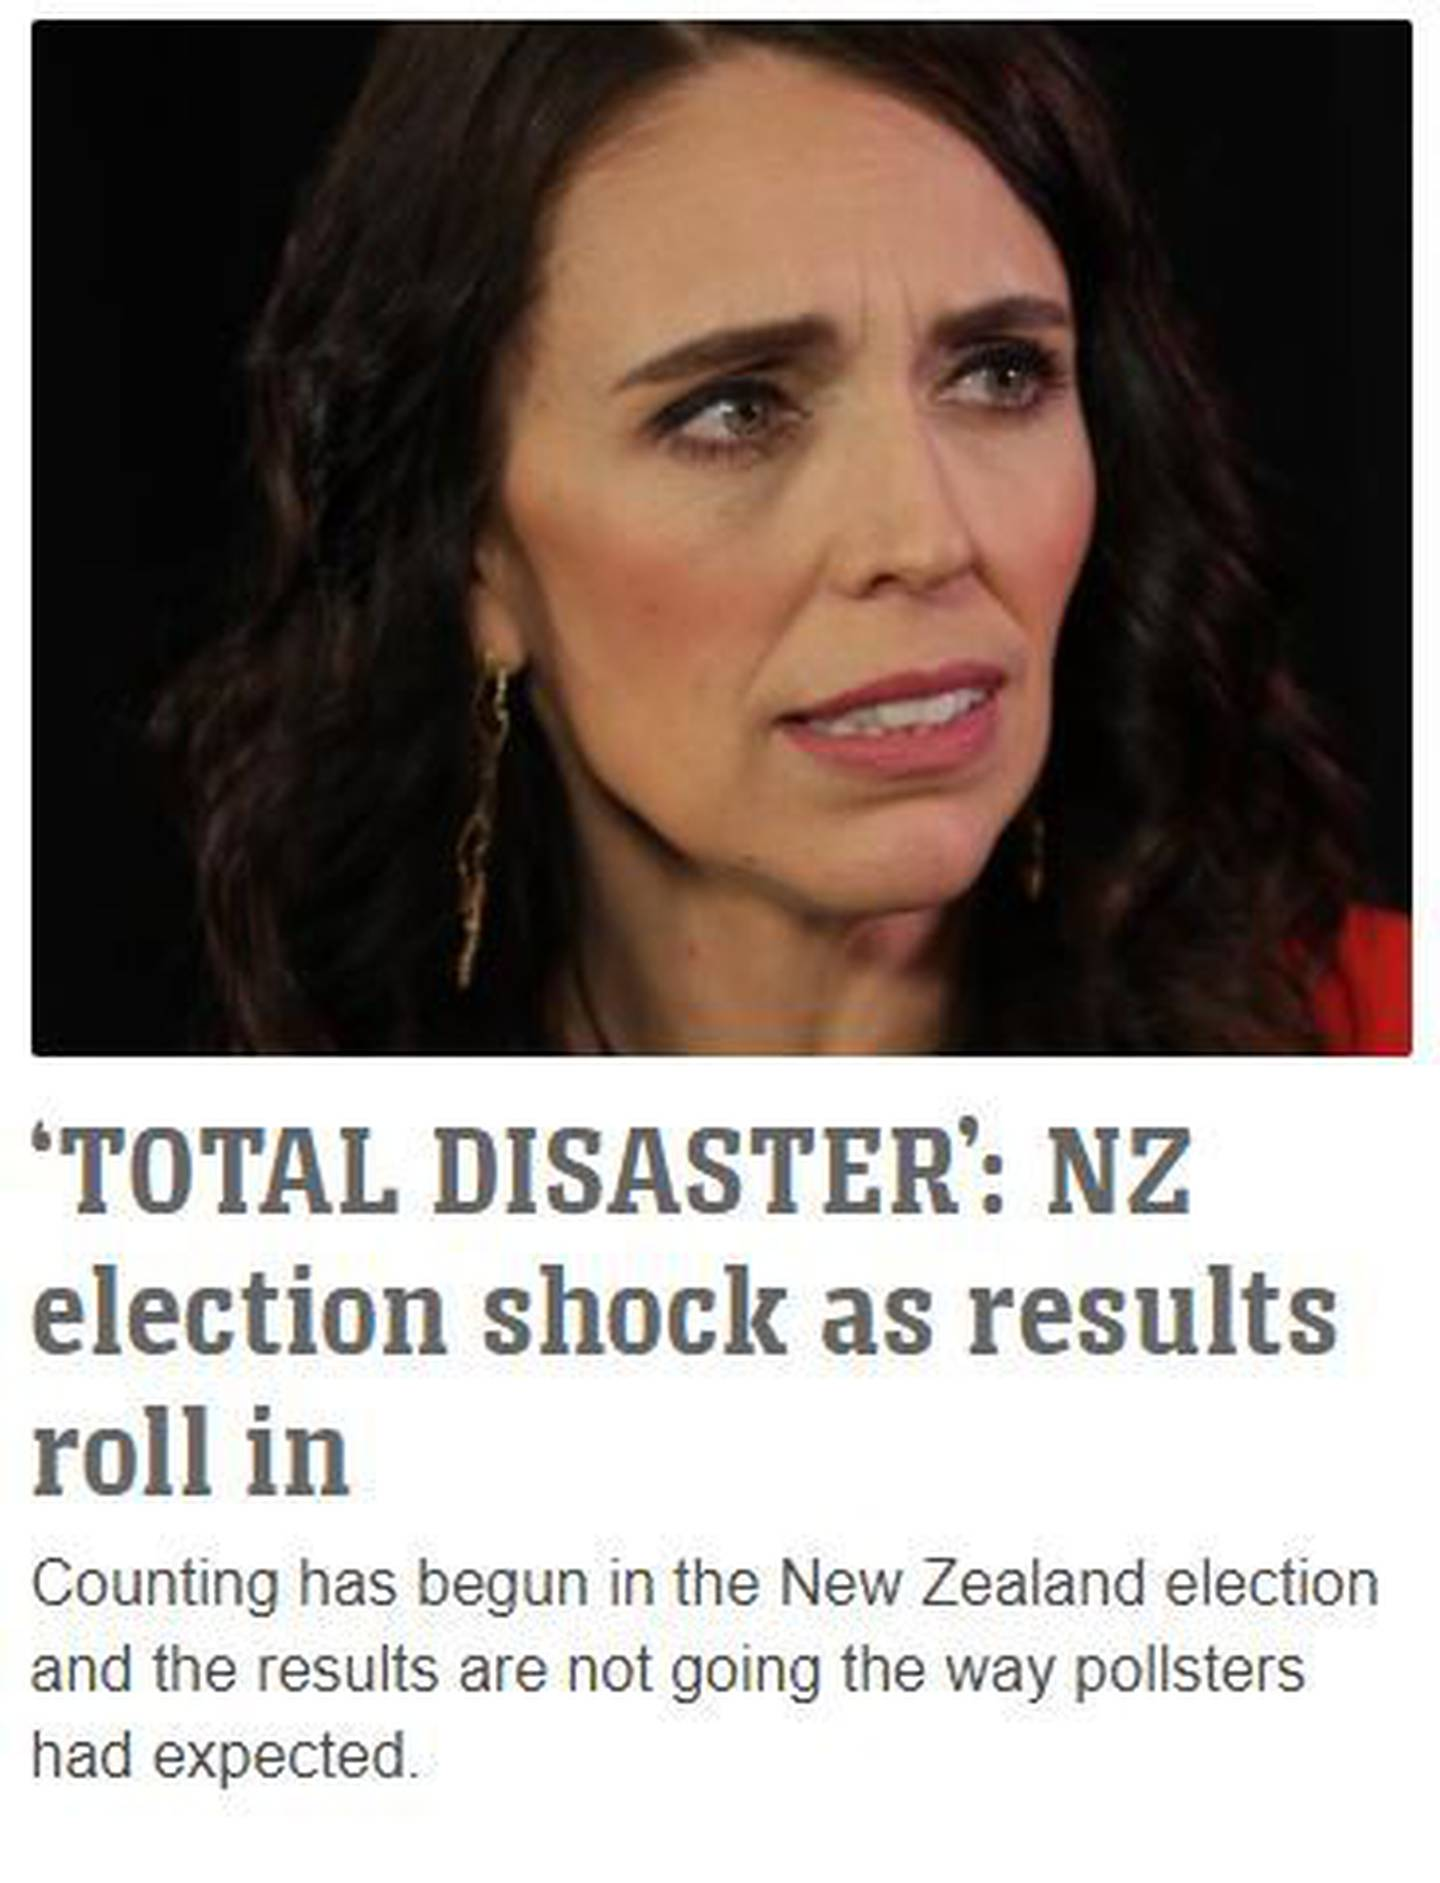 News.com.au's initial reporting of the results suggested that the outcome had been quite different.